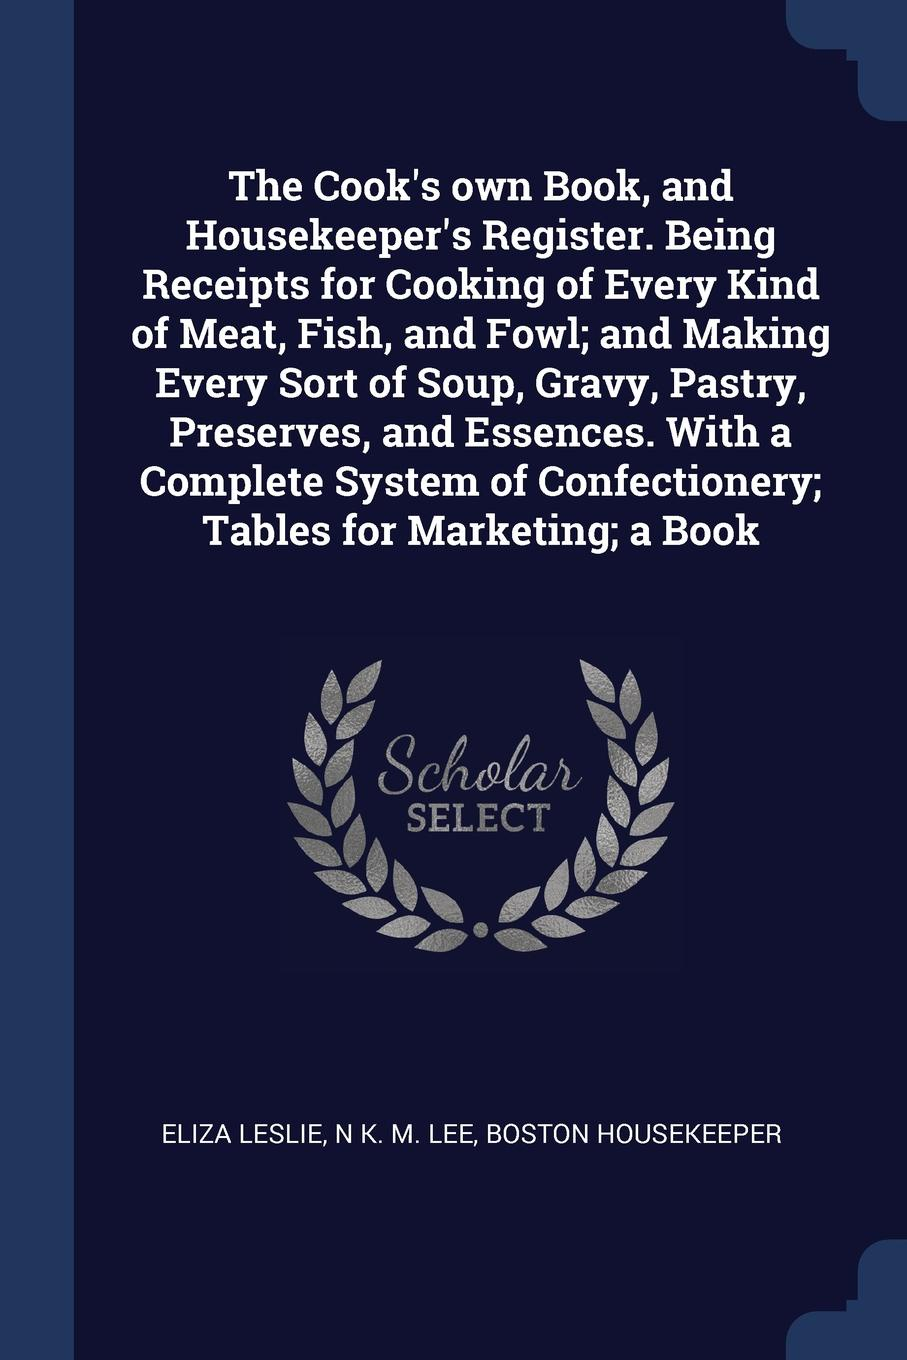 The Cook`s own Book, and Housekeeper`s Register. Being Receipts for Cooking of Every Kind of Meat, Fish, and Fowl; and Making Every Sort of Soup, Gravy, Pastry, Preserves, and Essences. With a Complete System of Confectionery; Tables for Marketing...